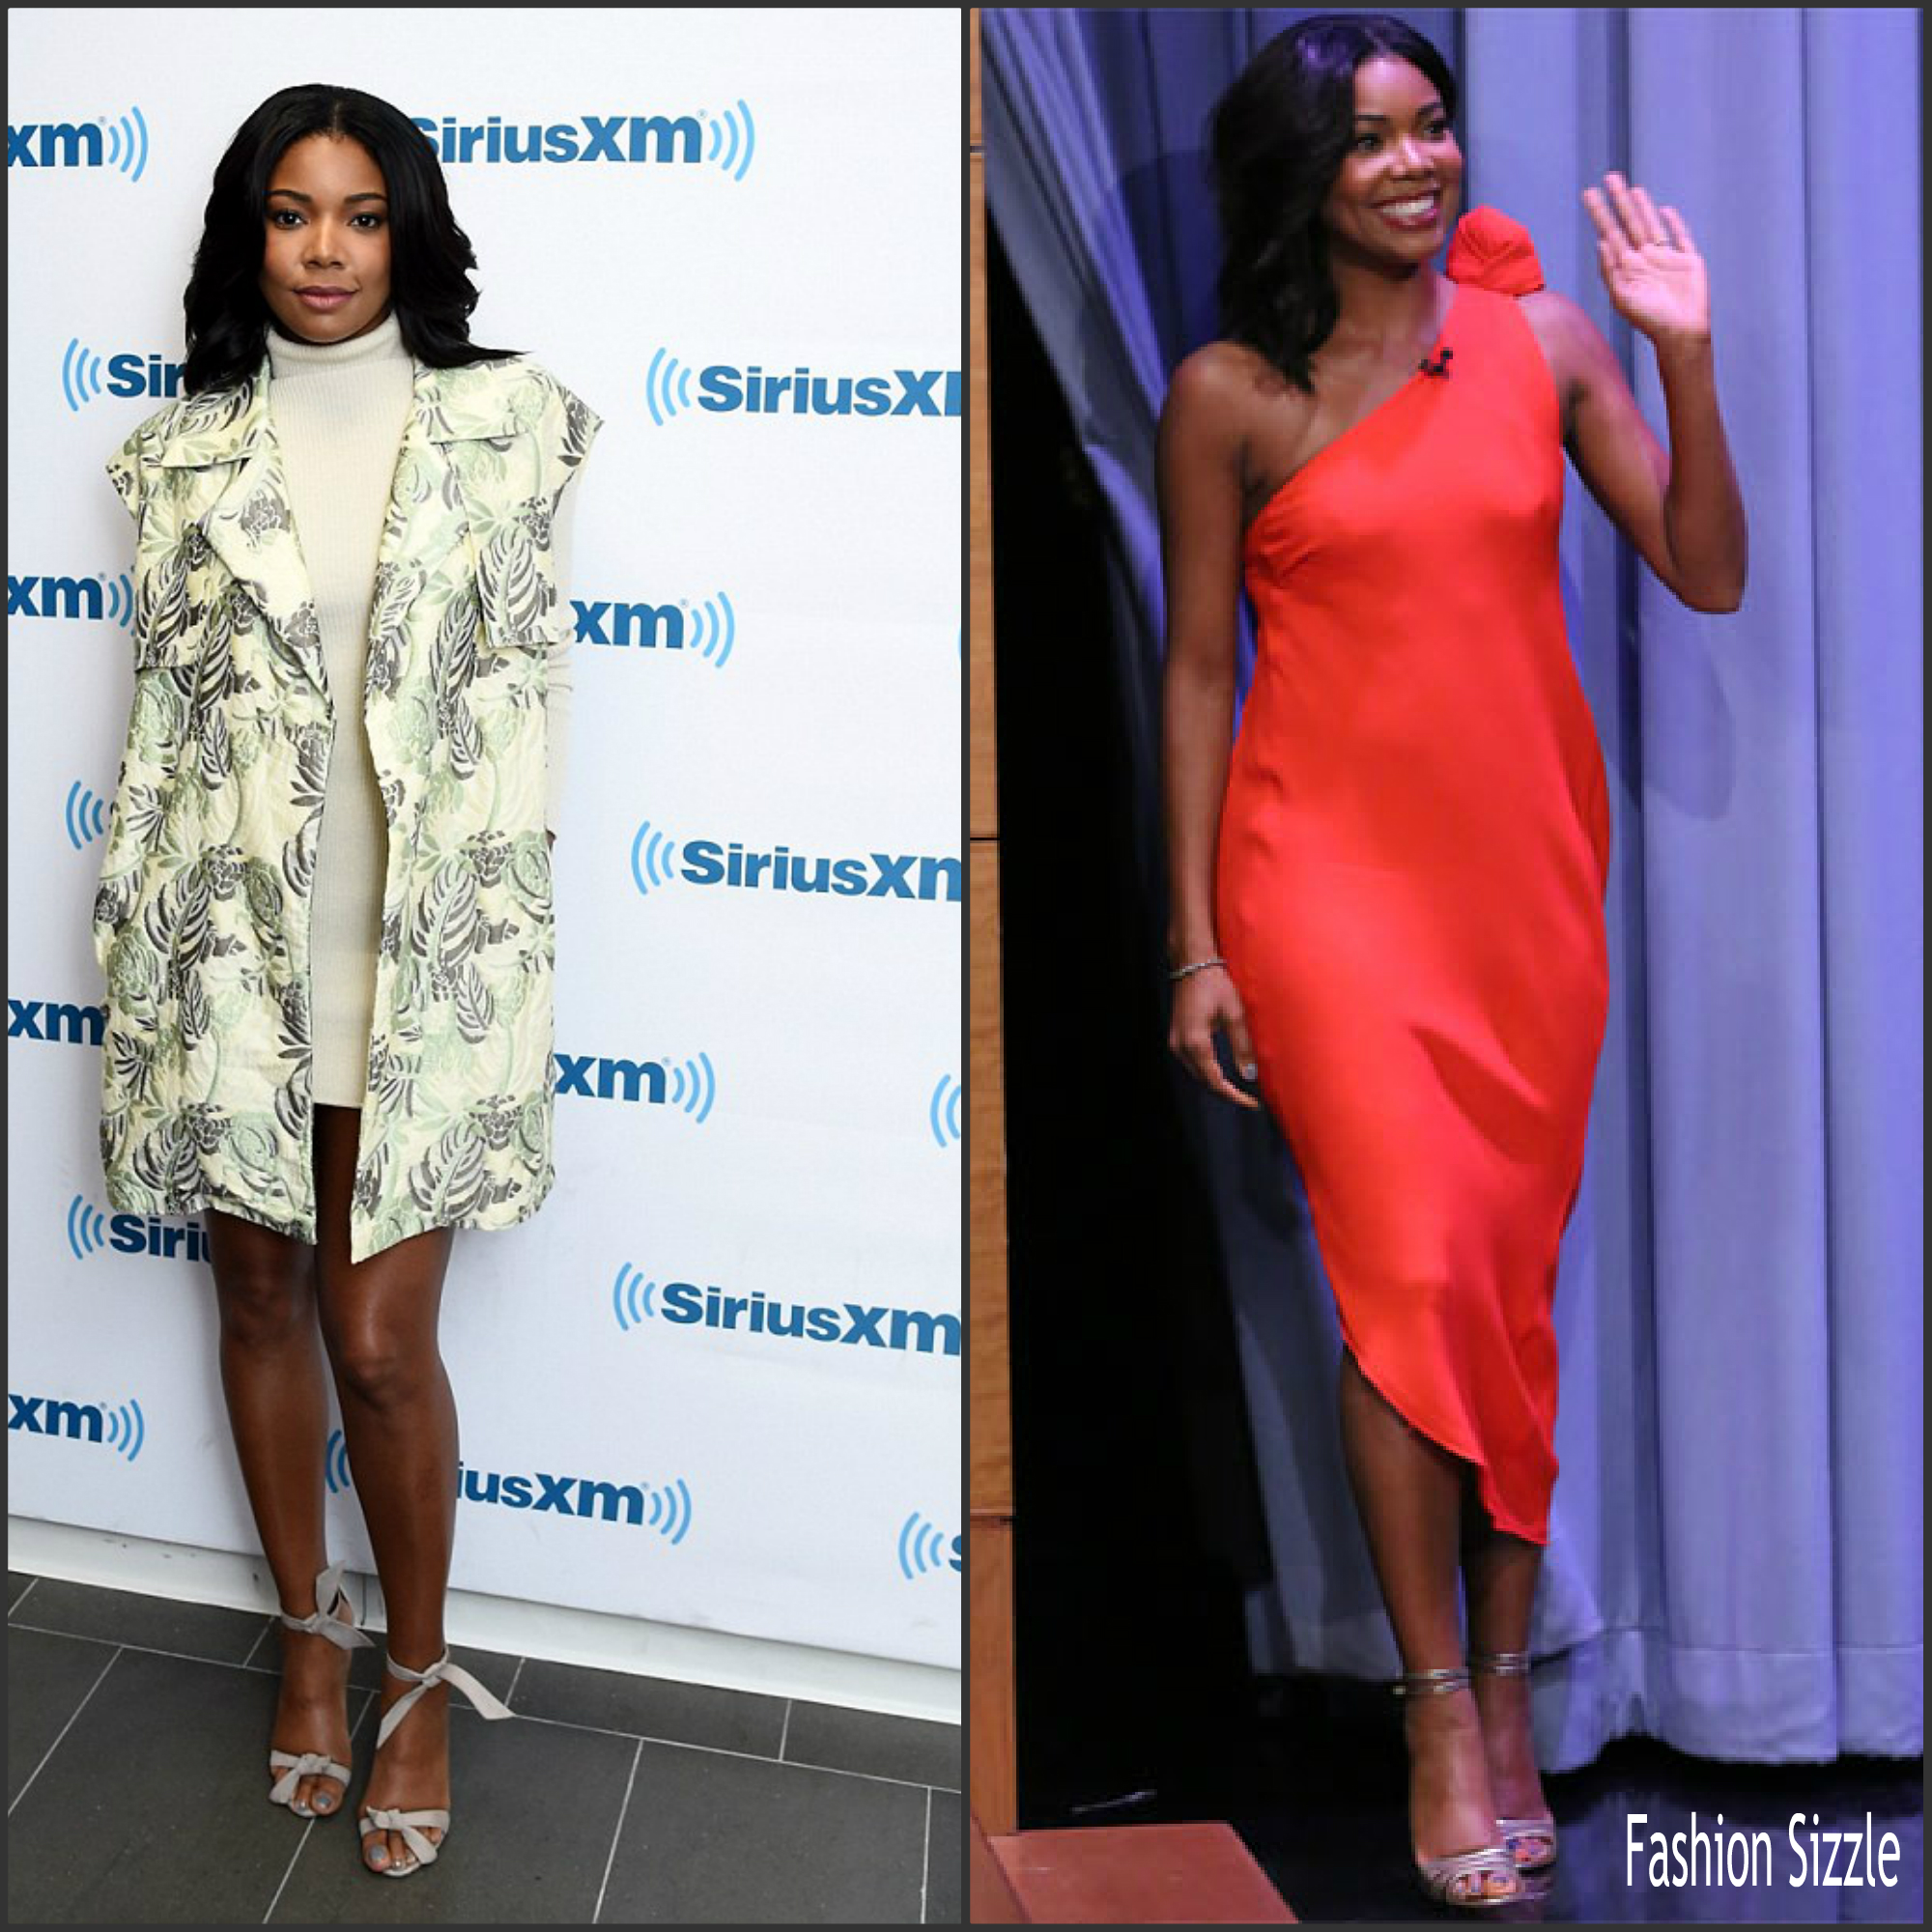 gabrielle-union-in-baja-east-vika-gazinskaya-siriusxmstudios-the-tonight-show-starrring-jimmy-fallon